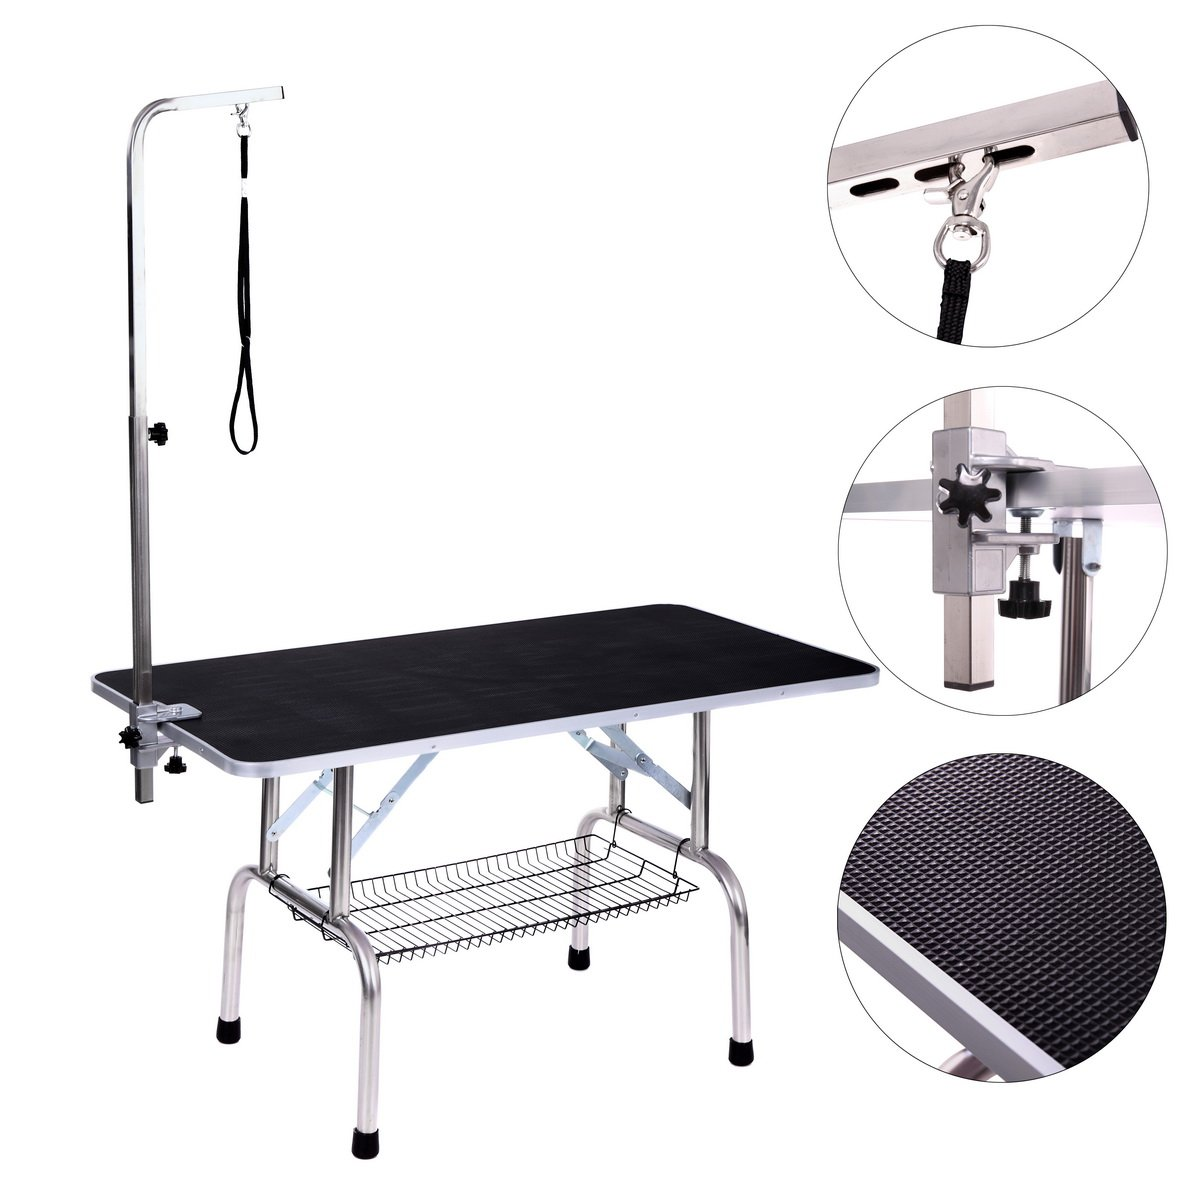 Affordable Dog Grooming Table Arm : Amazon.com: Dog Grooming Table, Adjustable Arm and Clamp for Pet, Grooming  Table with Grooming Loop (48u0027u0027 x 24u0027u0027)